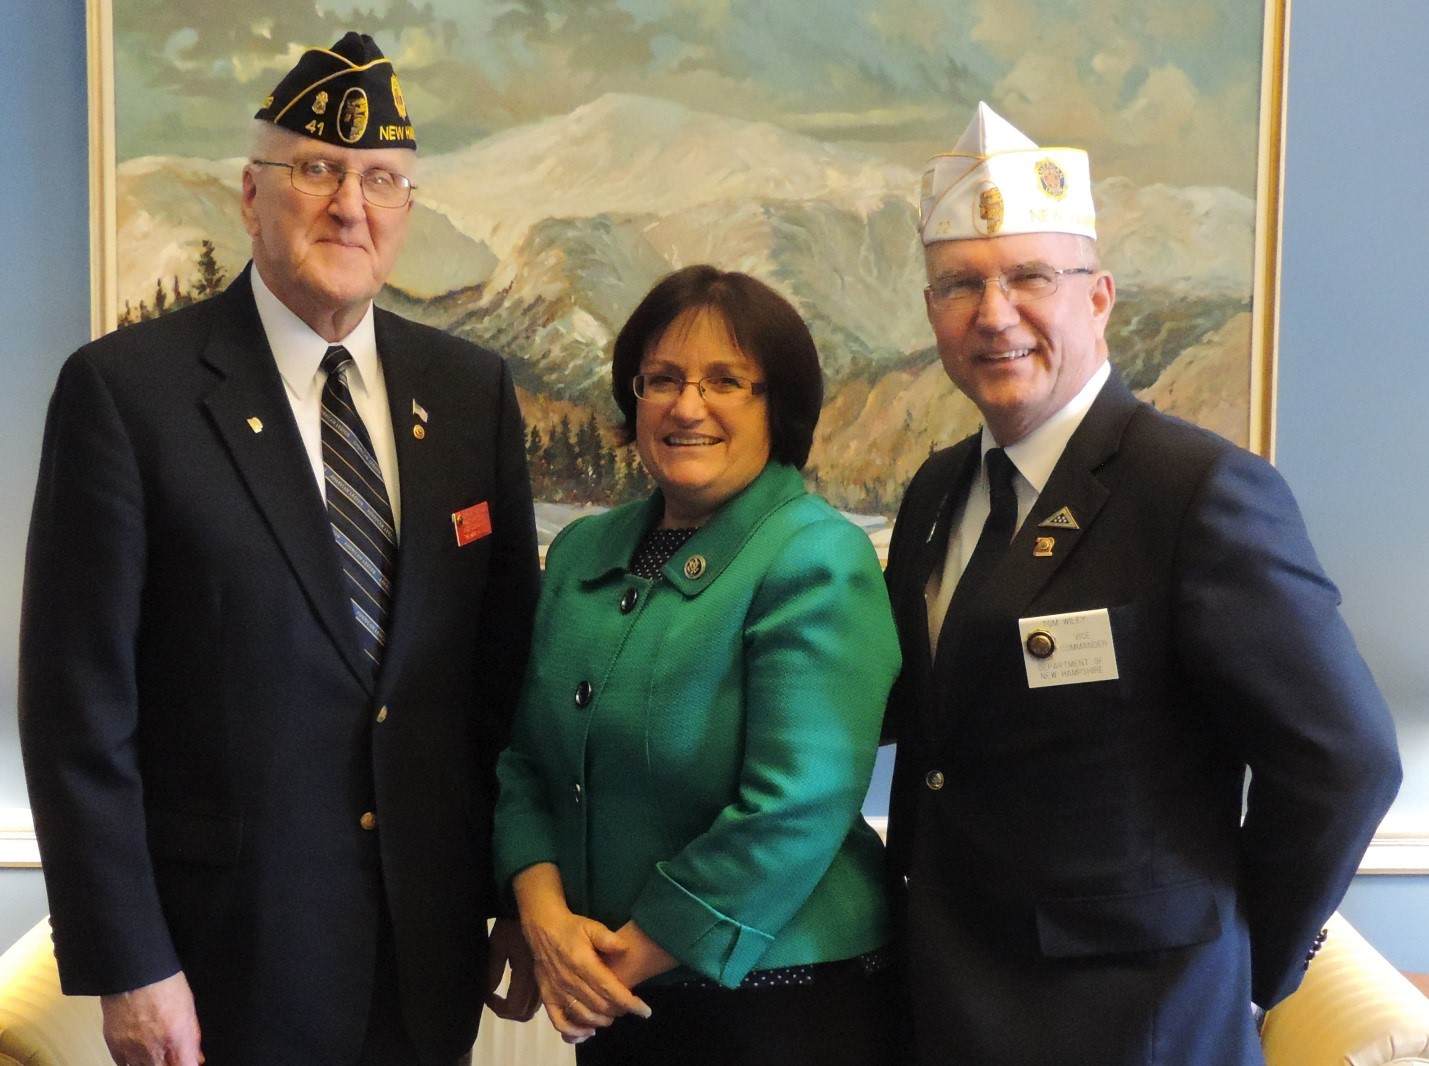 Rep. Kuster with veterans